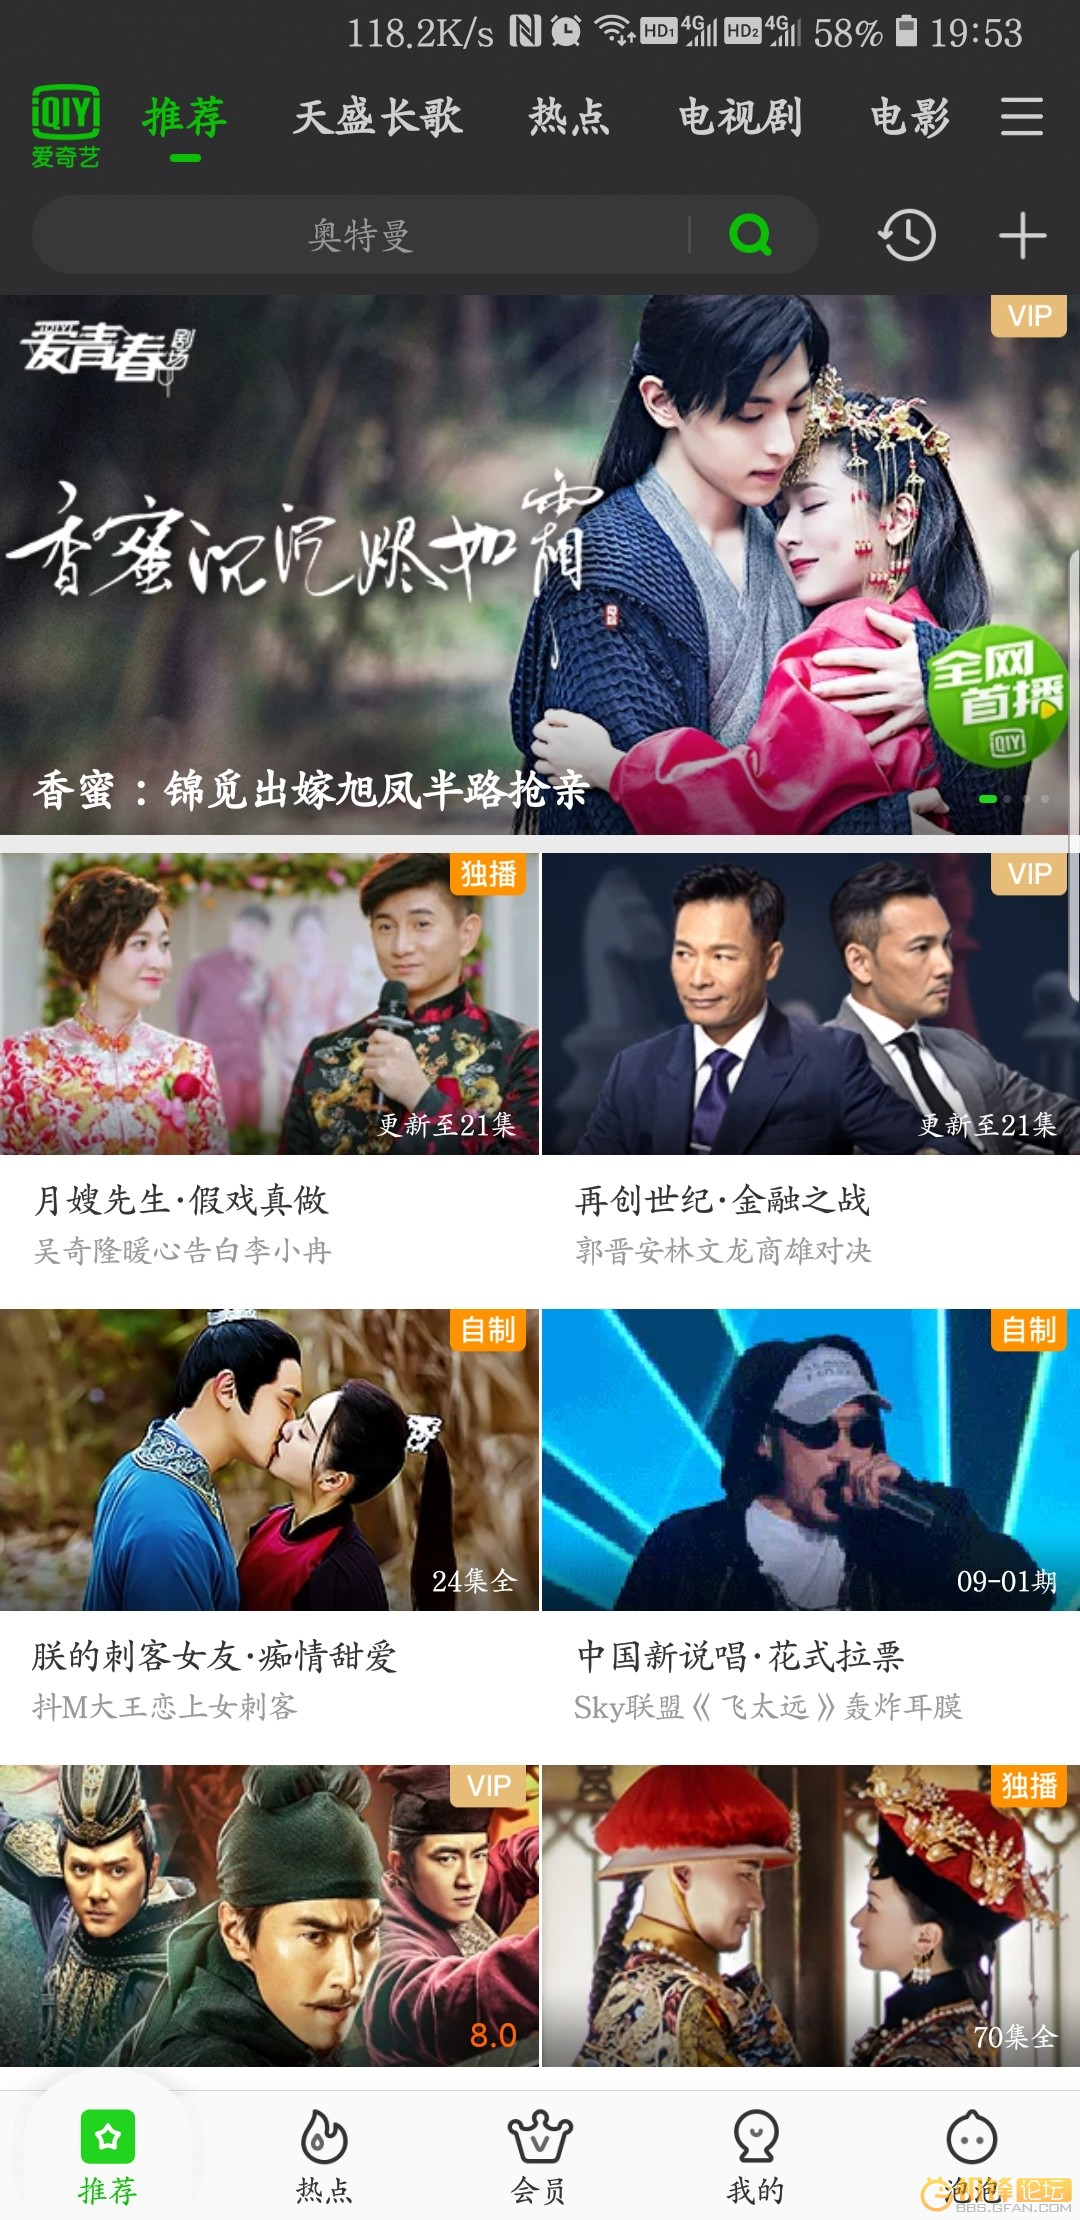 Screenshot_20180904-195332_iQIYI.jpg